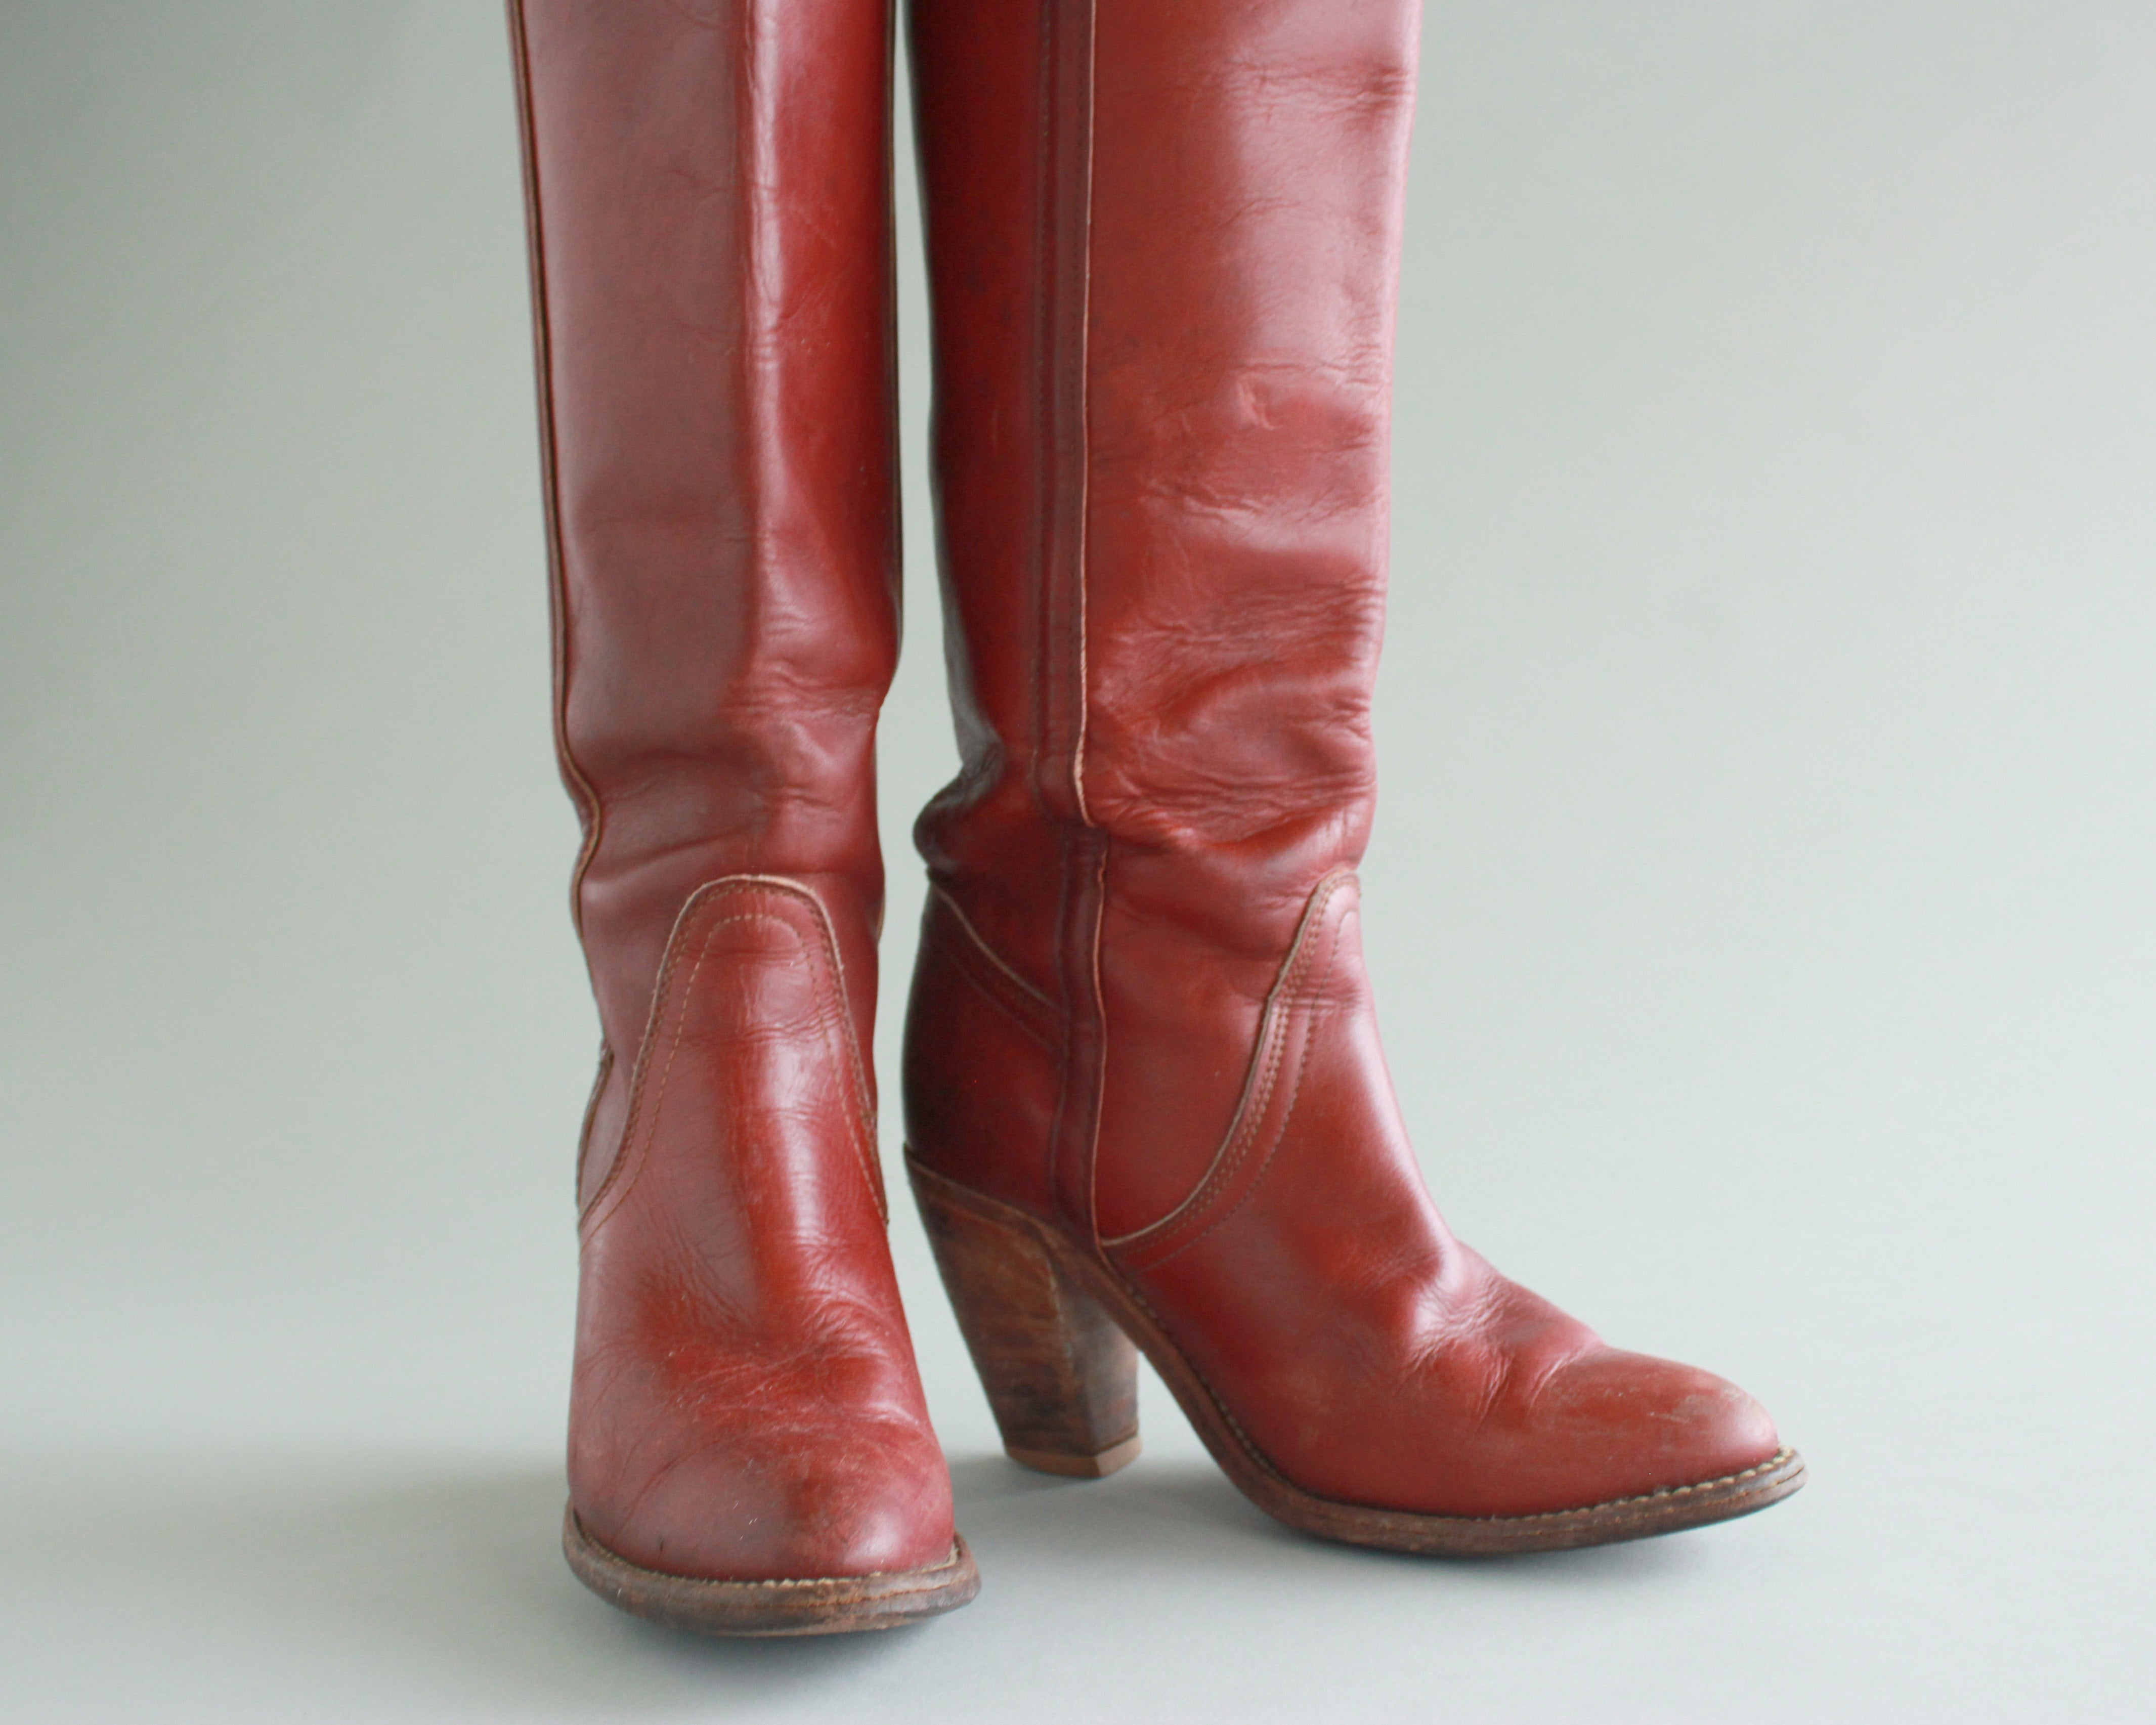 Frye Sz 5.5 B Vintage Mid Calf Brown Genuine Leather 1980s Women Pull On Cowgirl Boots.